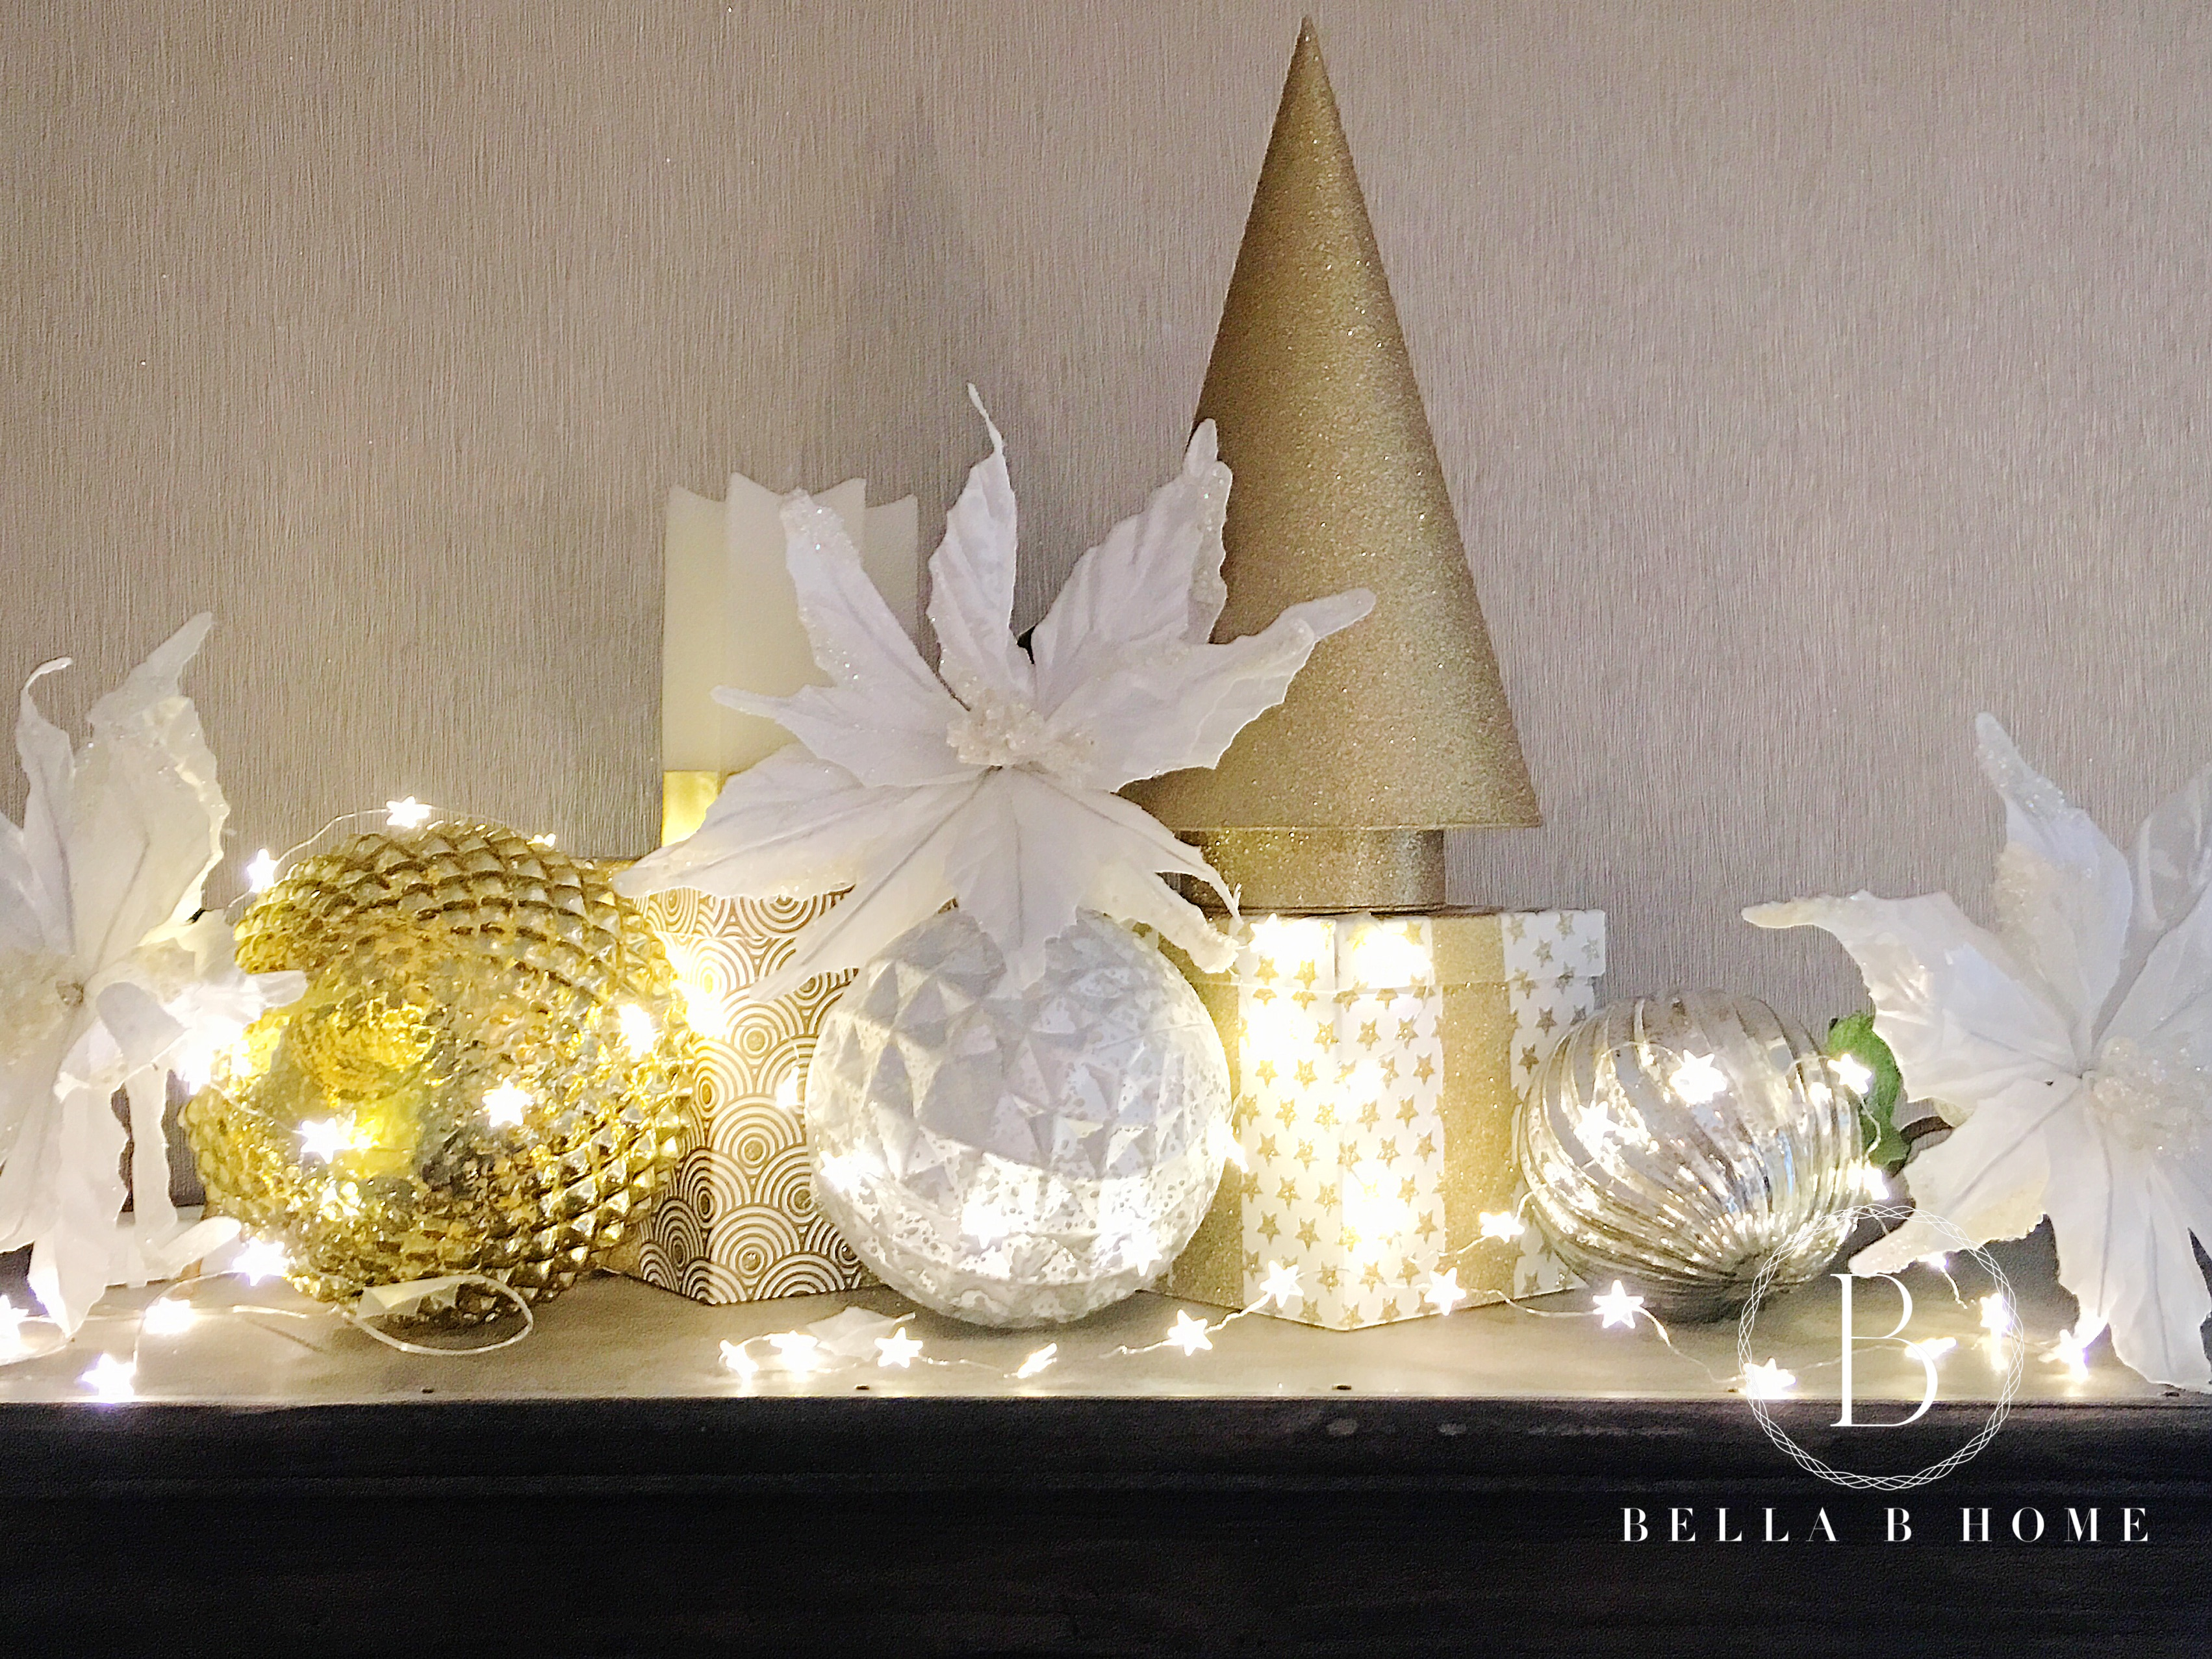 Why do we decorate with christmas lights - At Homegoods We Found Boxes That Were Filled With Candy To Do The Trick Again Add Some Lights Candles Large Decorative X Mas Ornaments